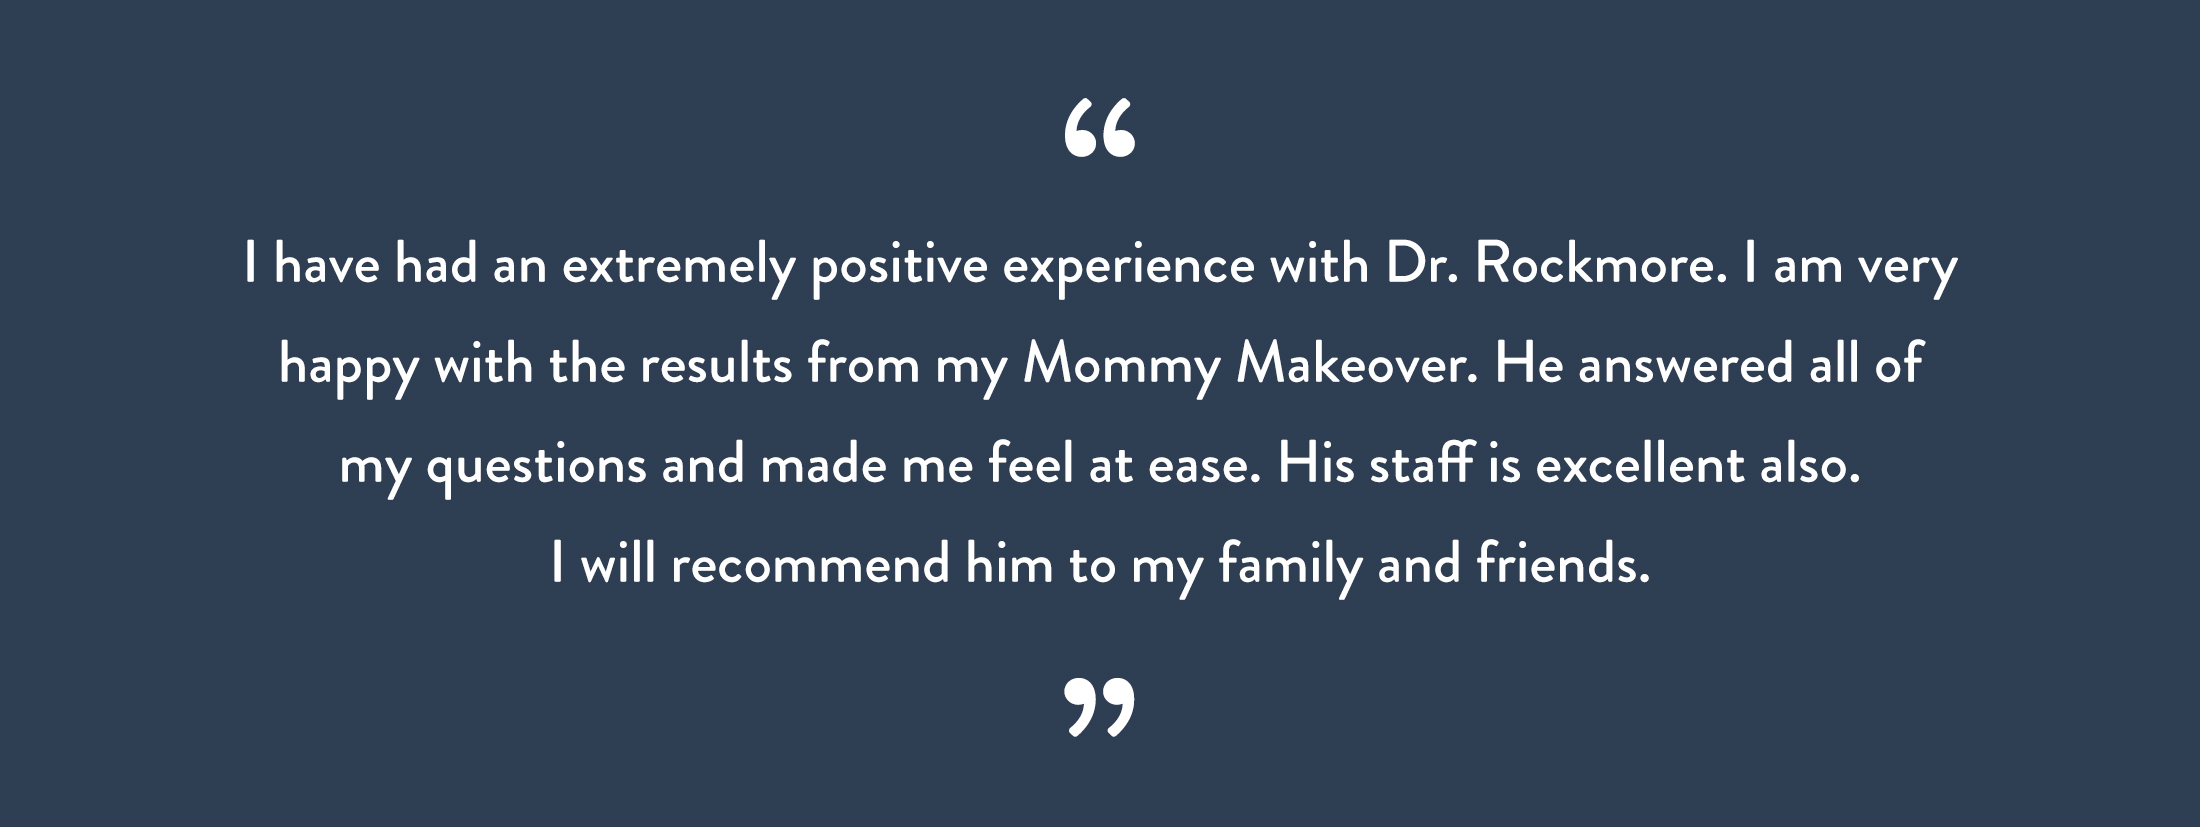 I have had an extremely positive experience with Dr. Rockmore.